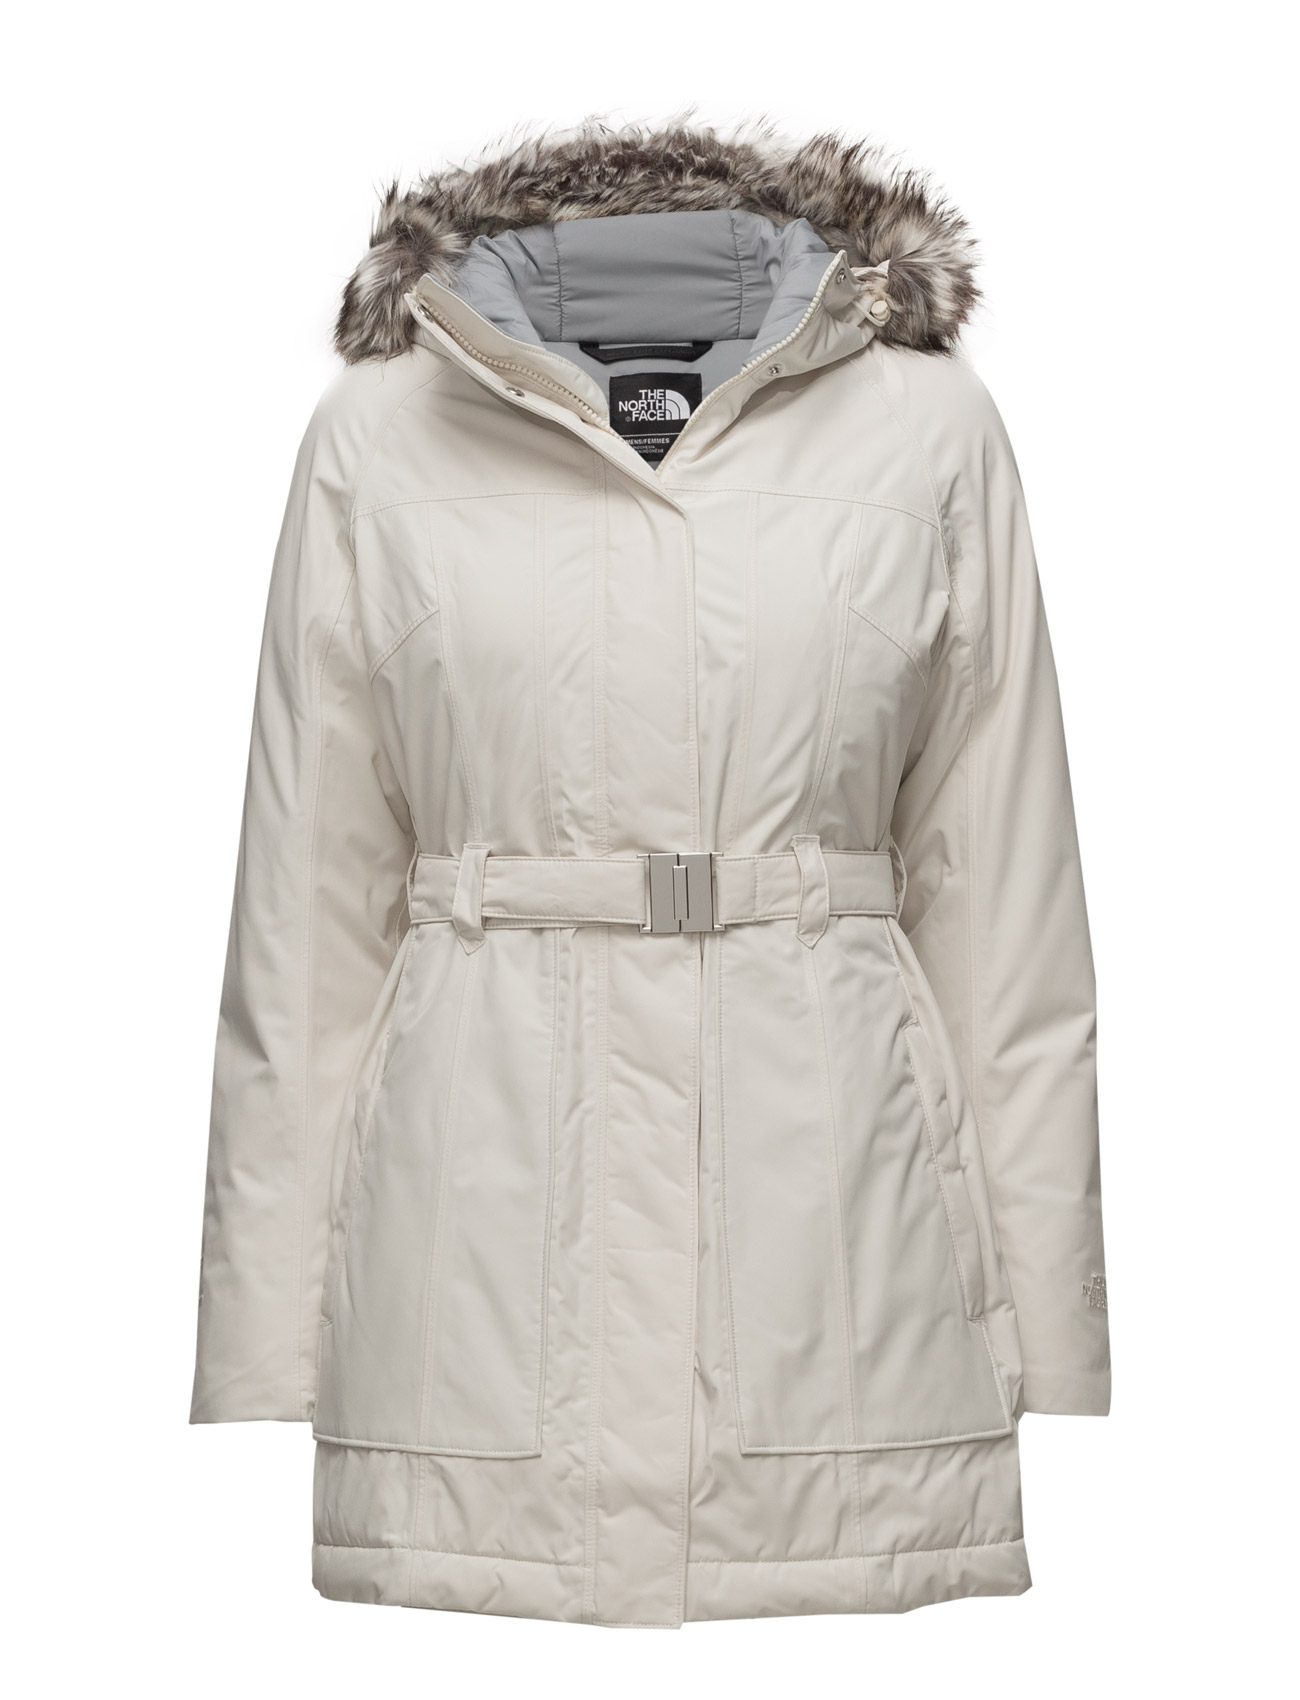 W brooklin parka 2 fra the north face på boozt.com dk